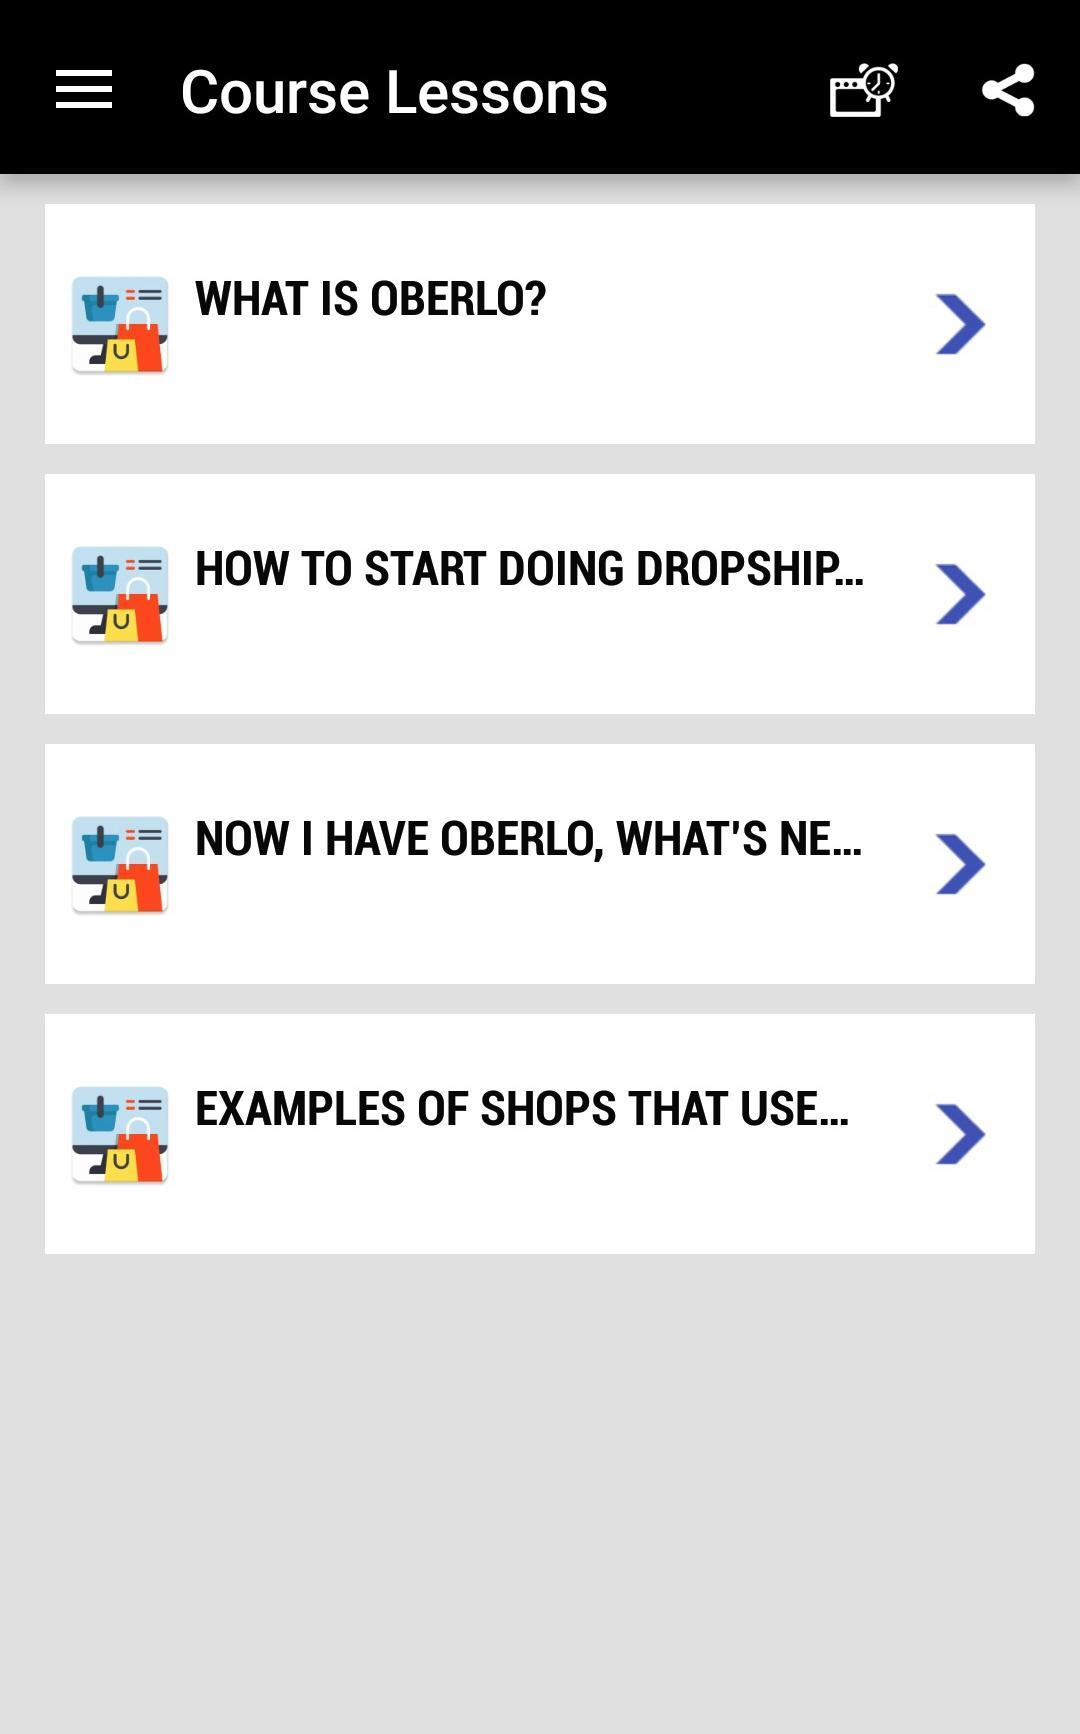 Oberlo Dropshipping Course 2019 for Android - APK Download